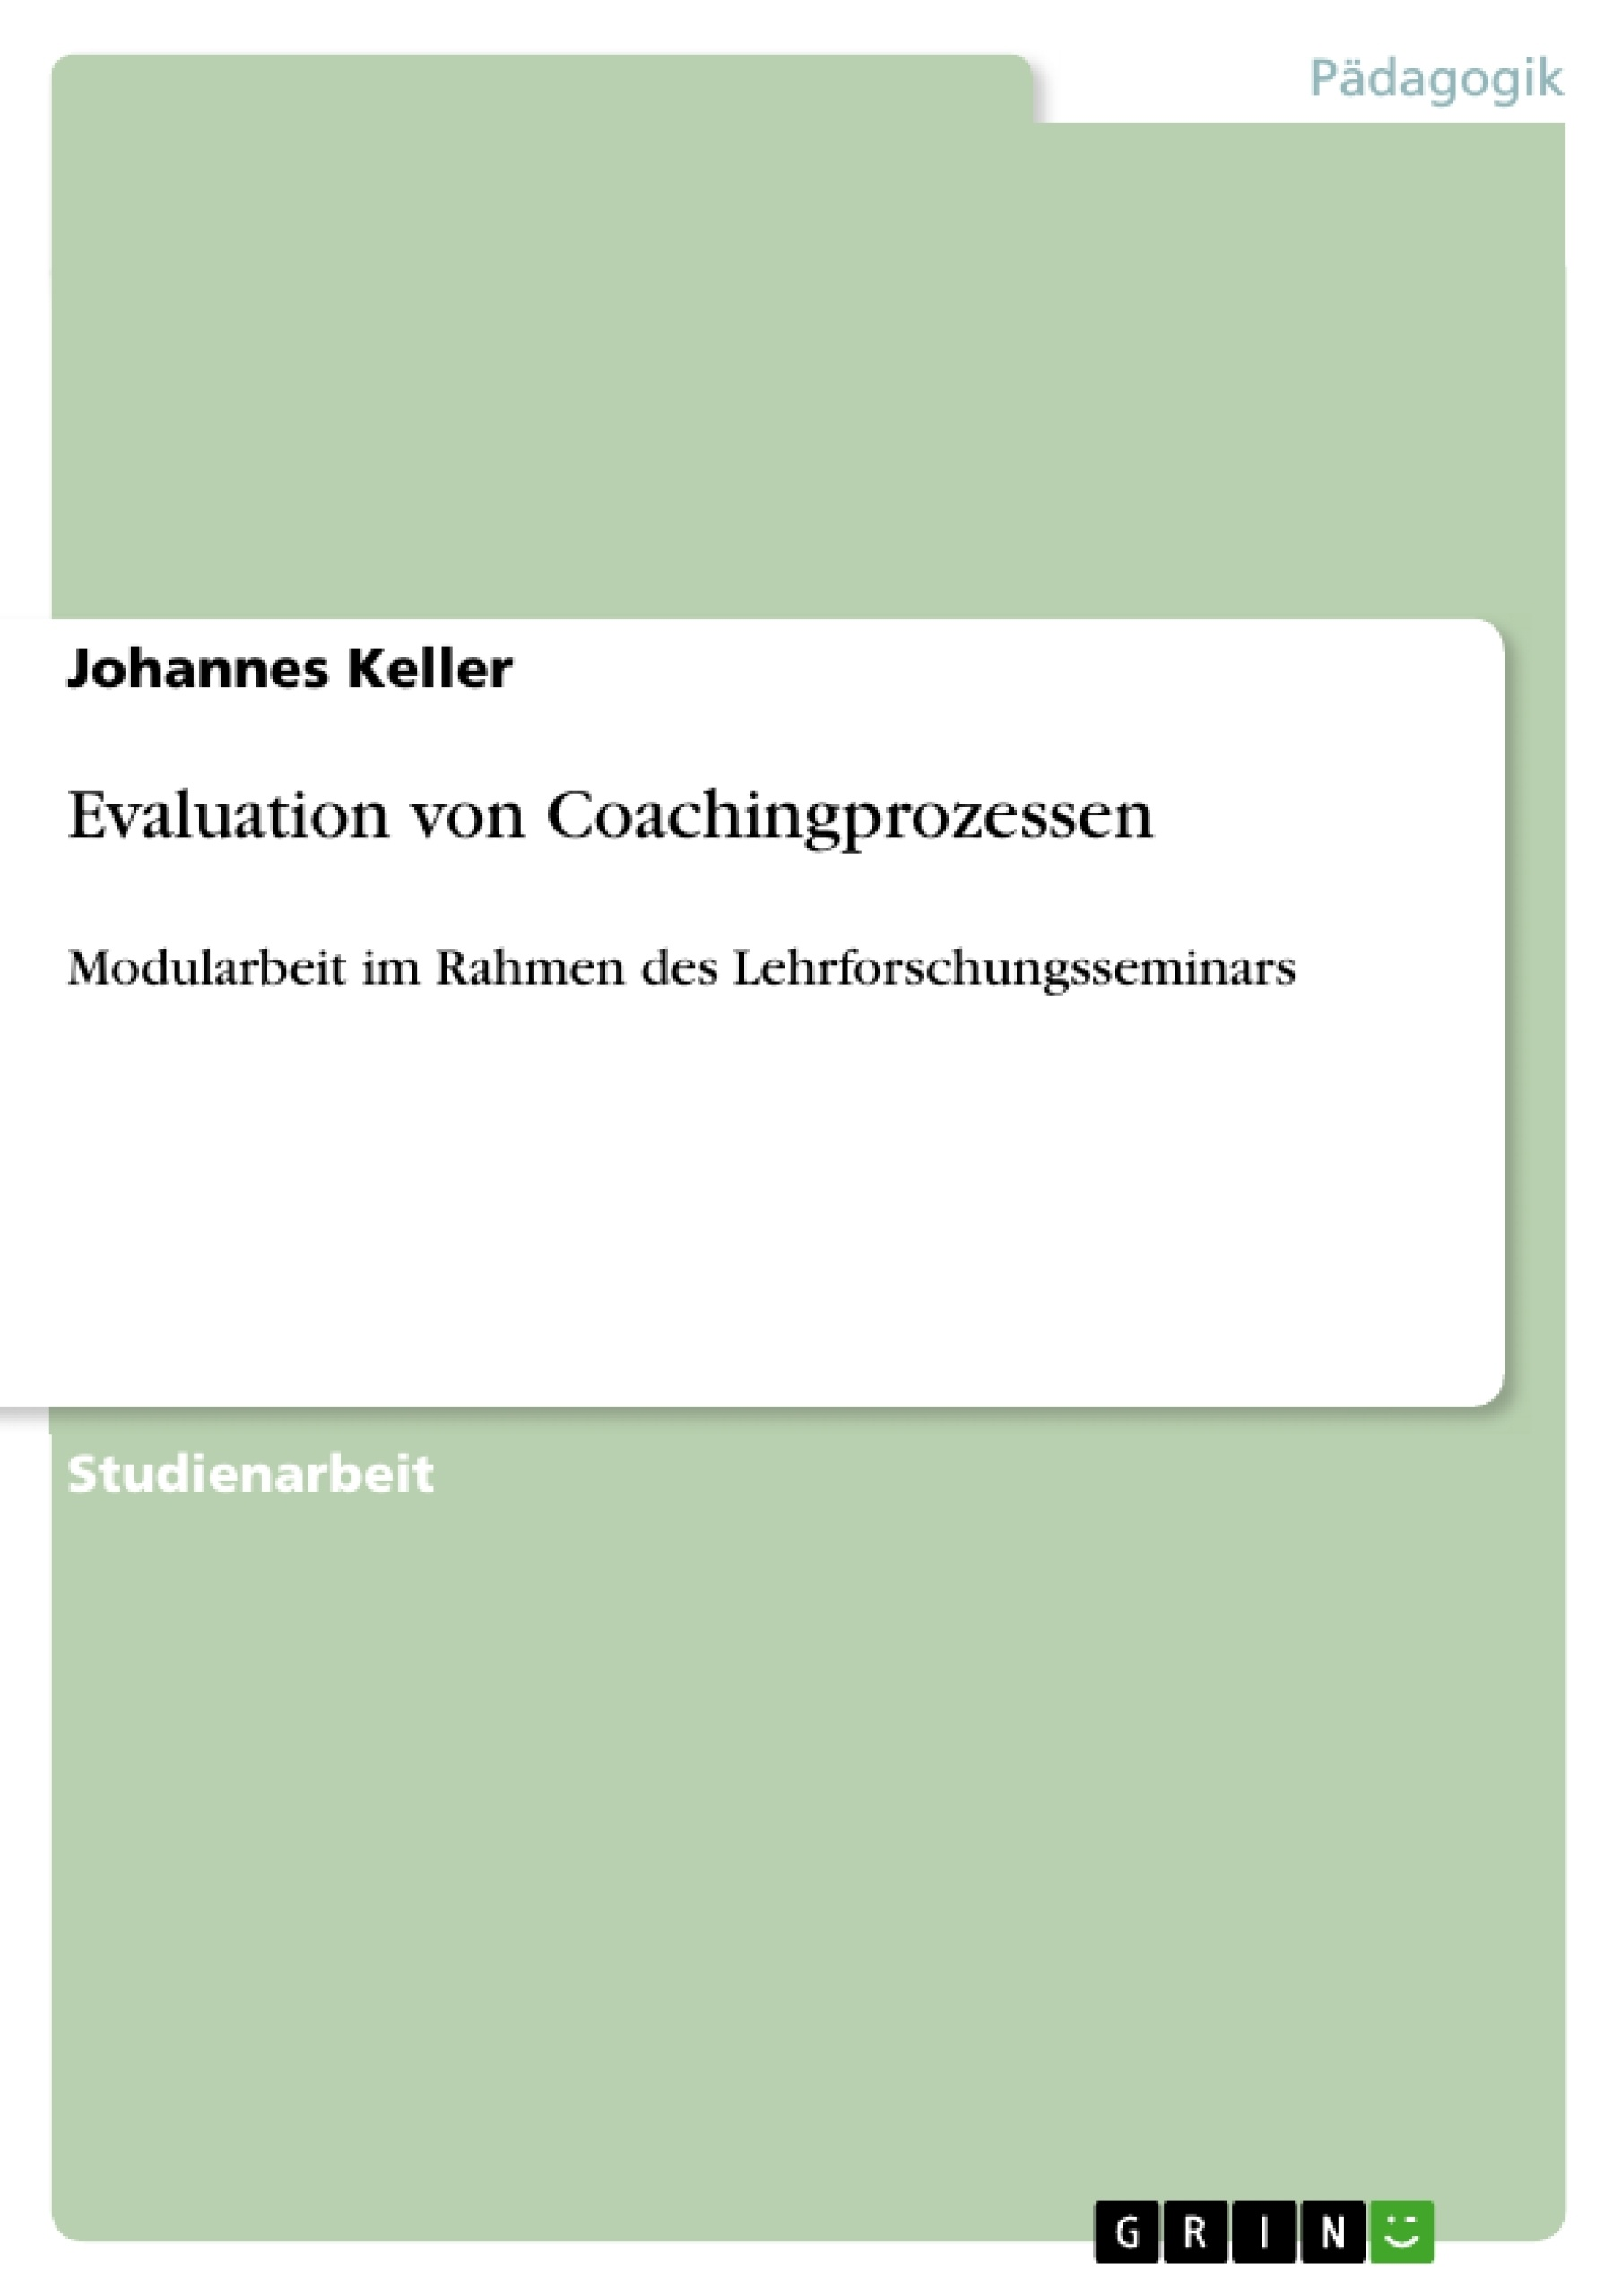 Titel: Evaluation von Coachingprozessen